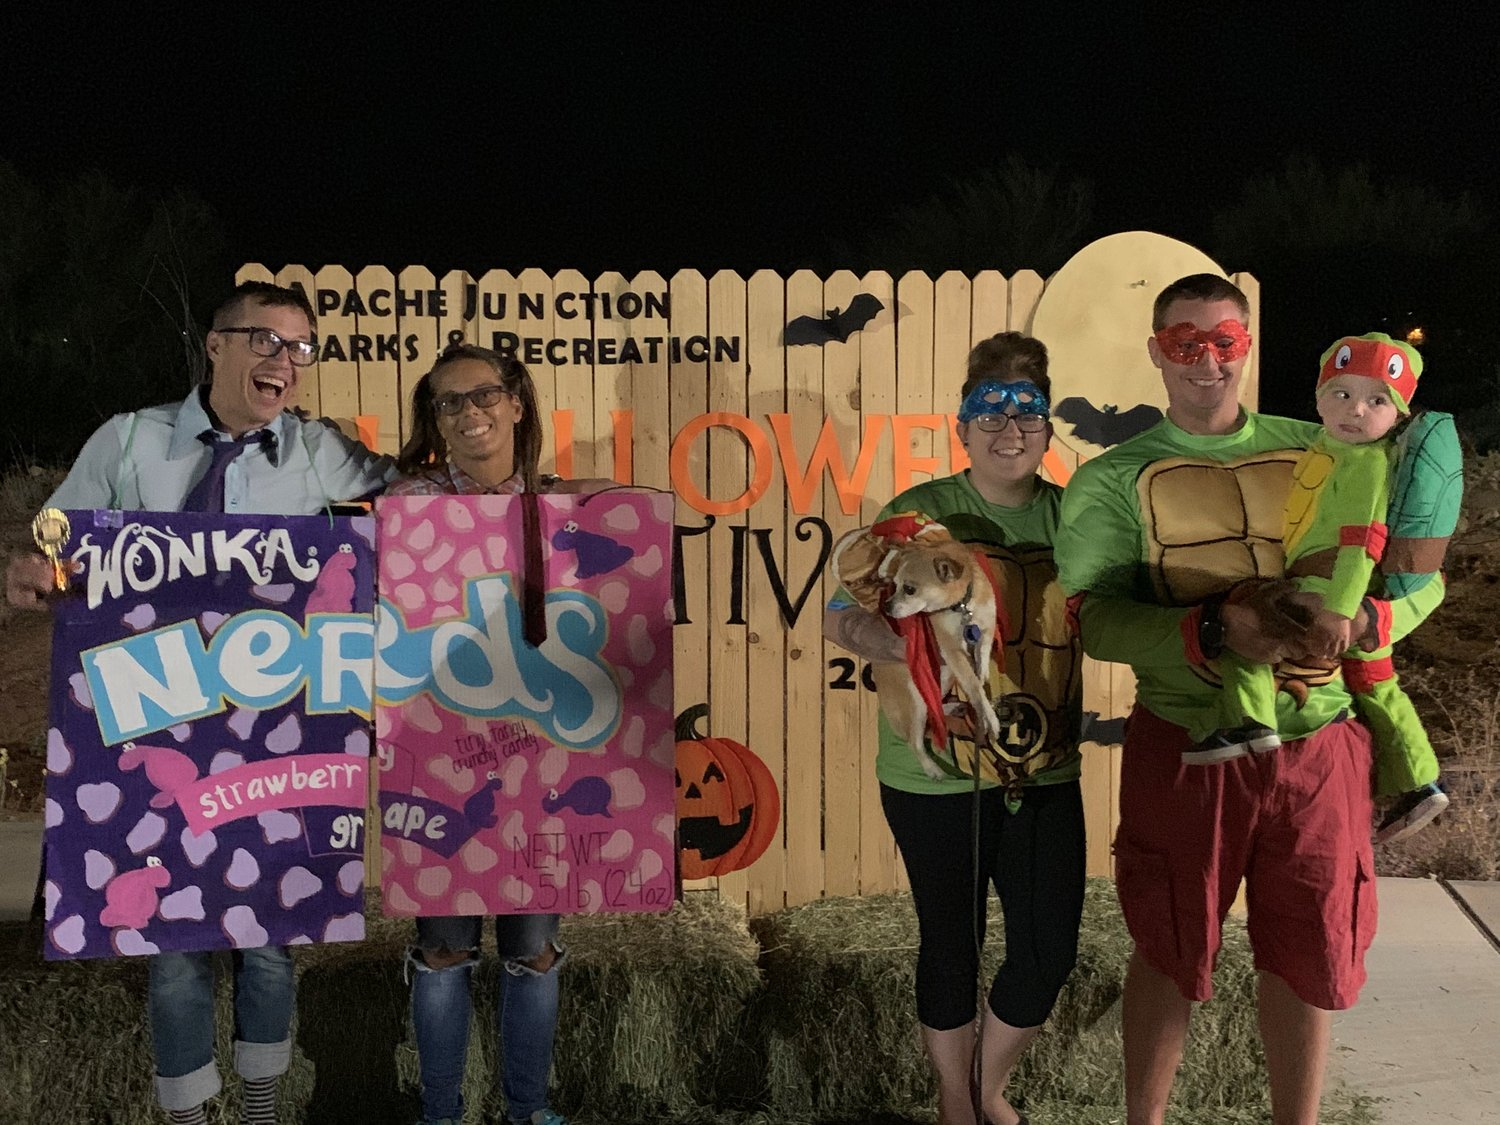 Family category winners at Apache Junction's 2019 annual Halloween festival were: first place, Erik and Jen Fish; and third place, Britany and Nich Ahmann.